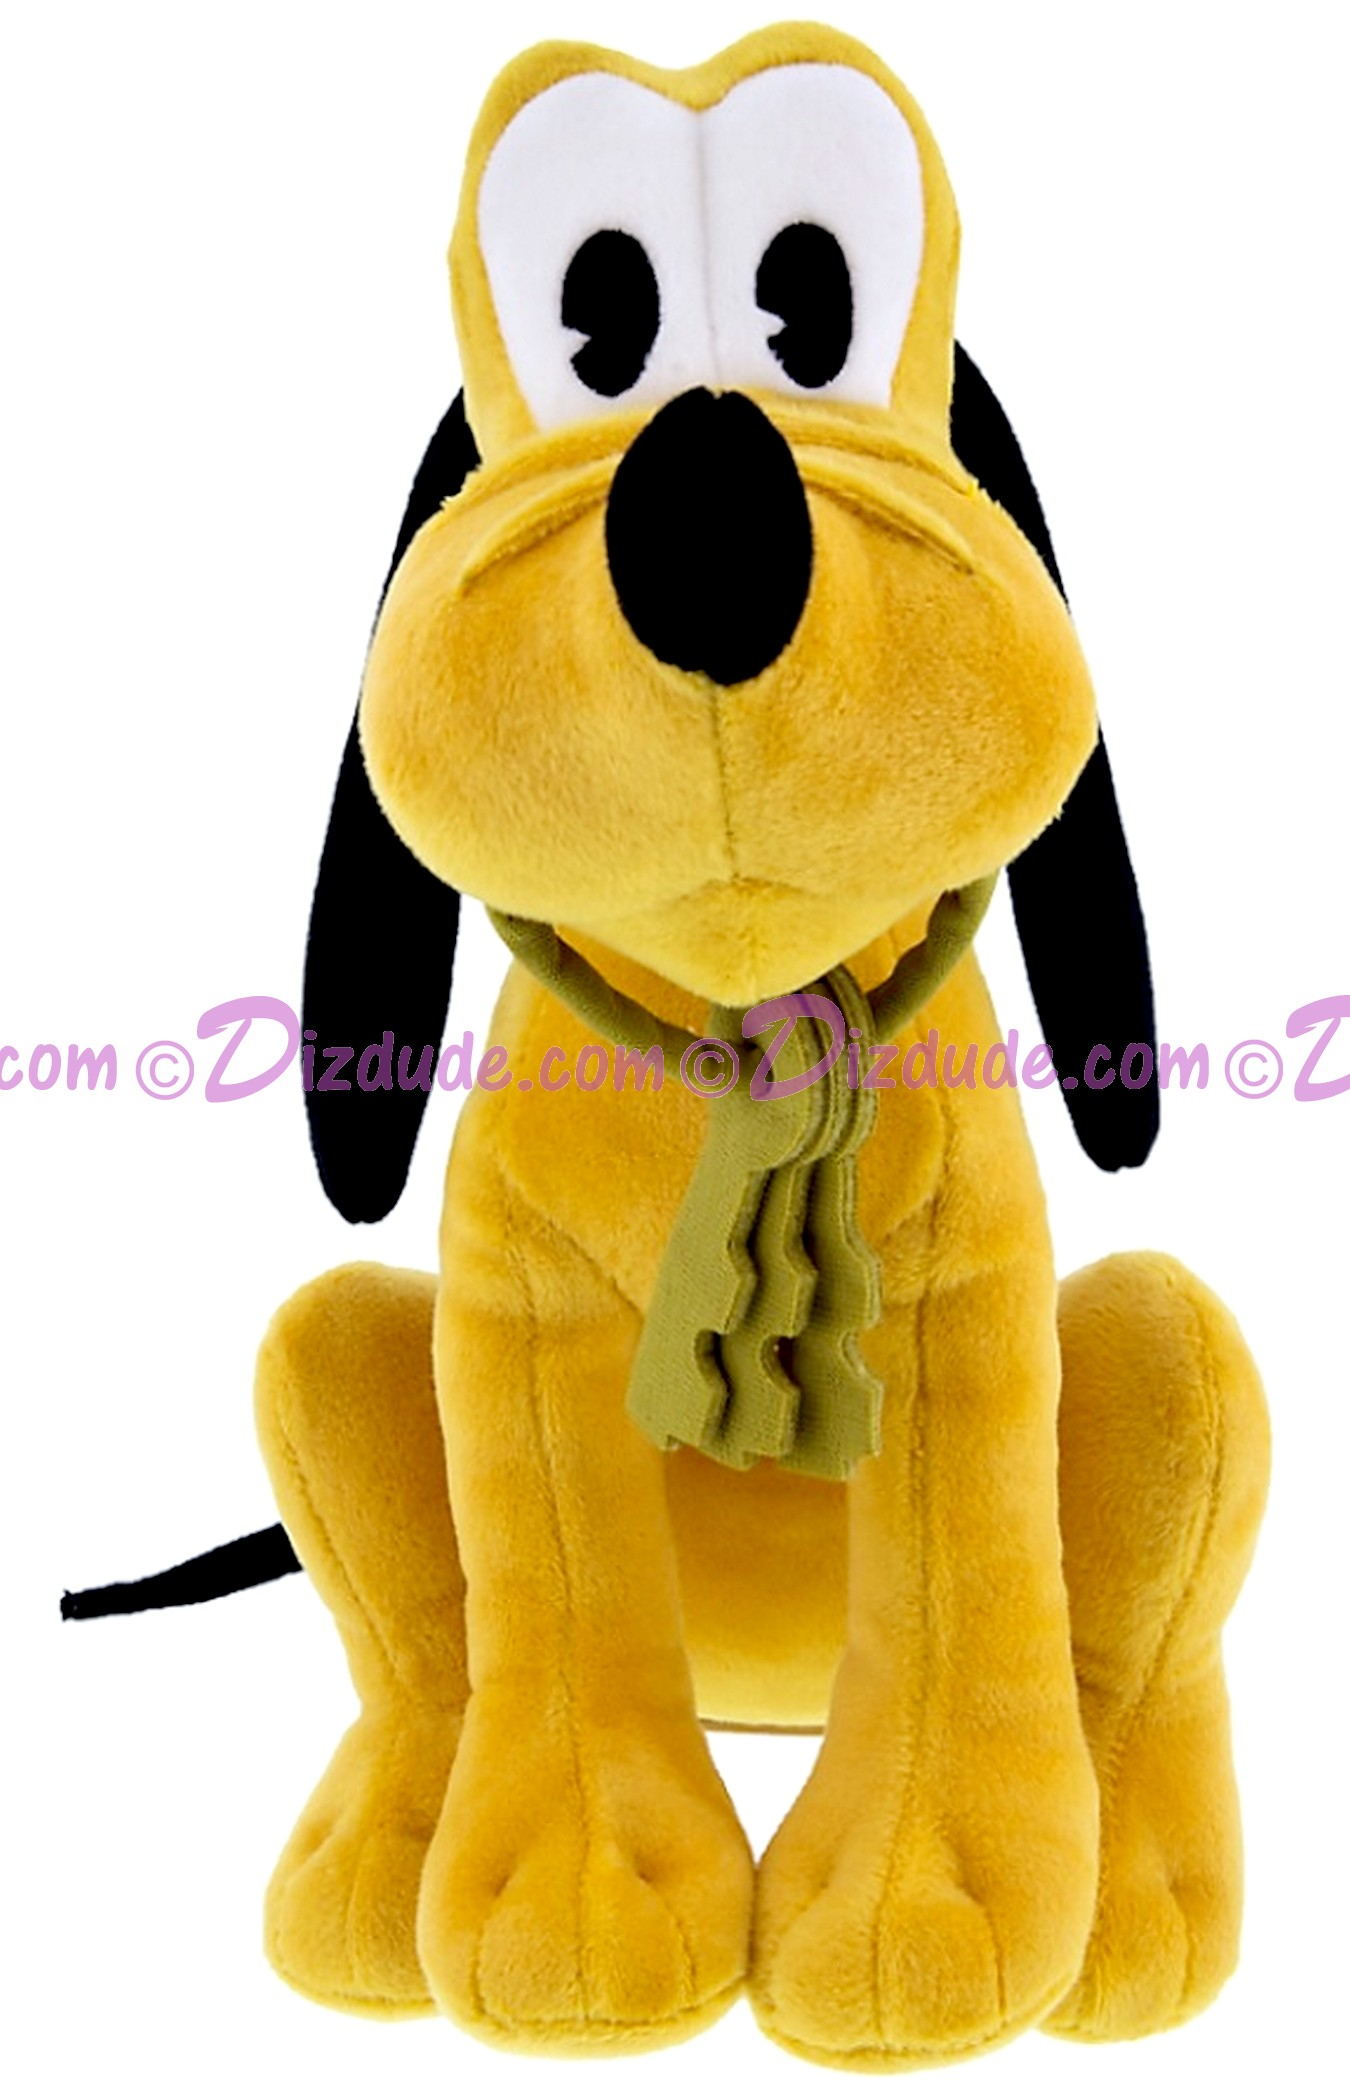 Pirate Dog Pluto 9 inch (23 cm) Plush ~ Pirates of the Caribbean © Dizdude.com